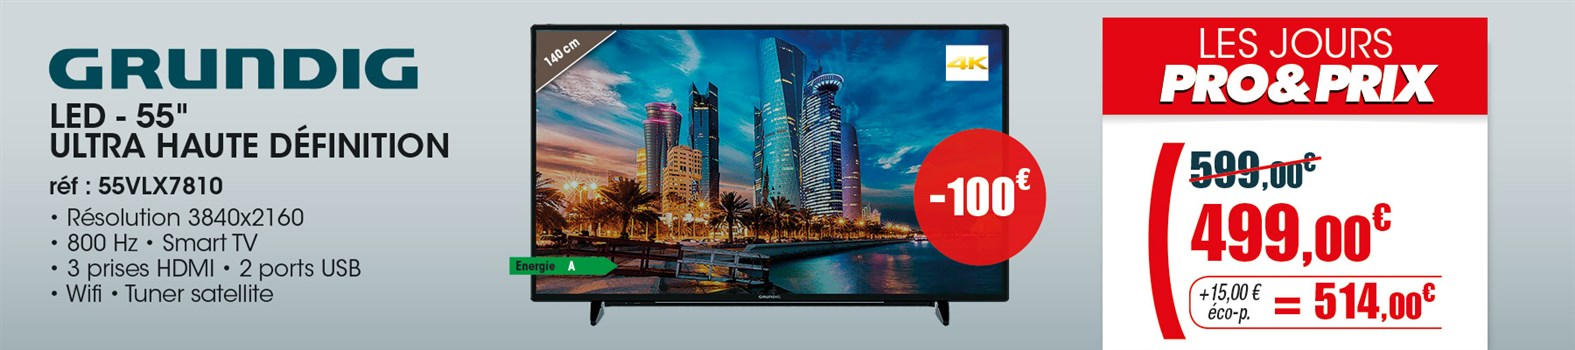 TV LED Grundig 55VLX7810BP